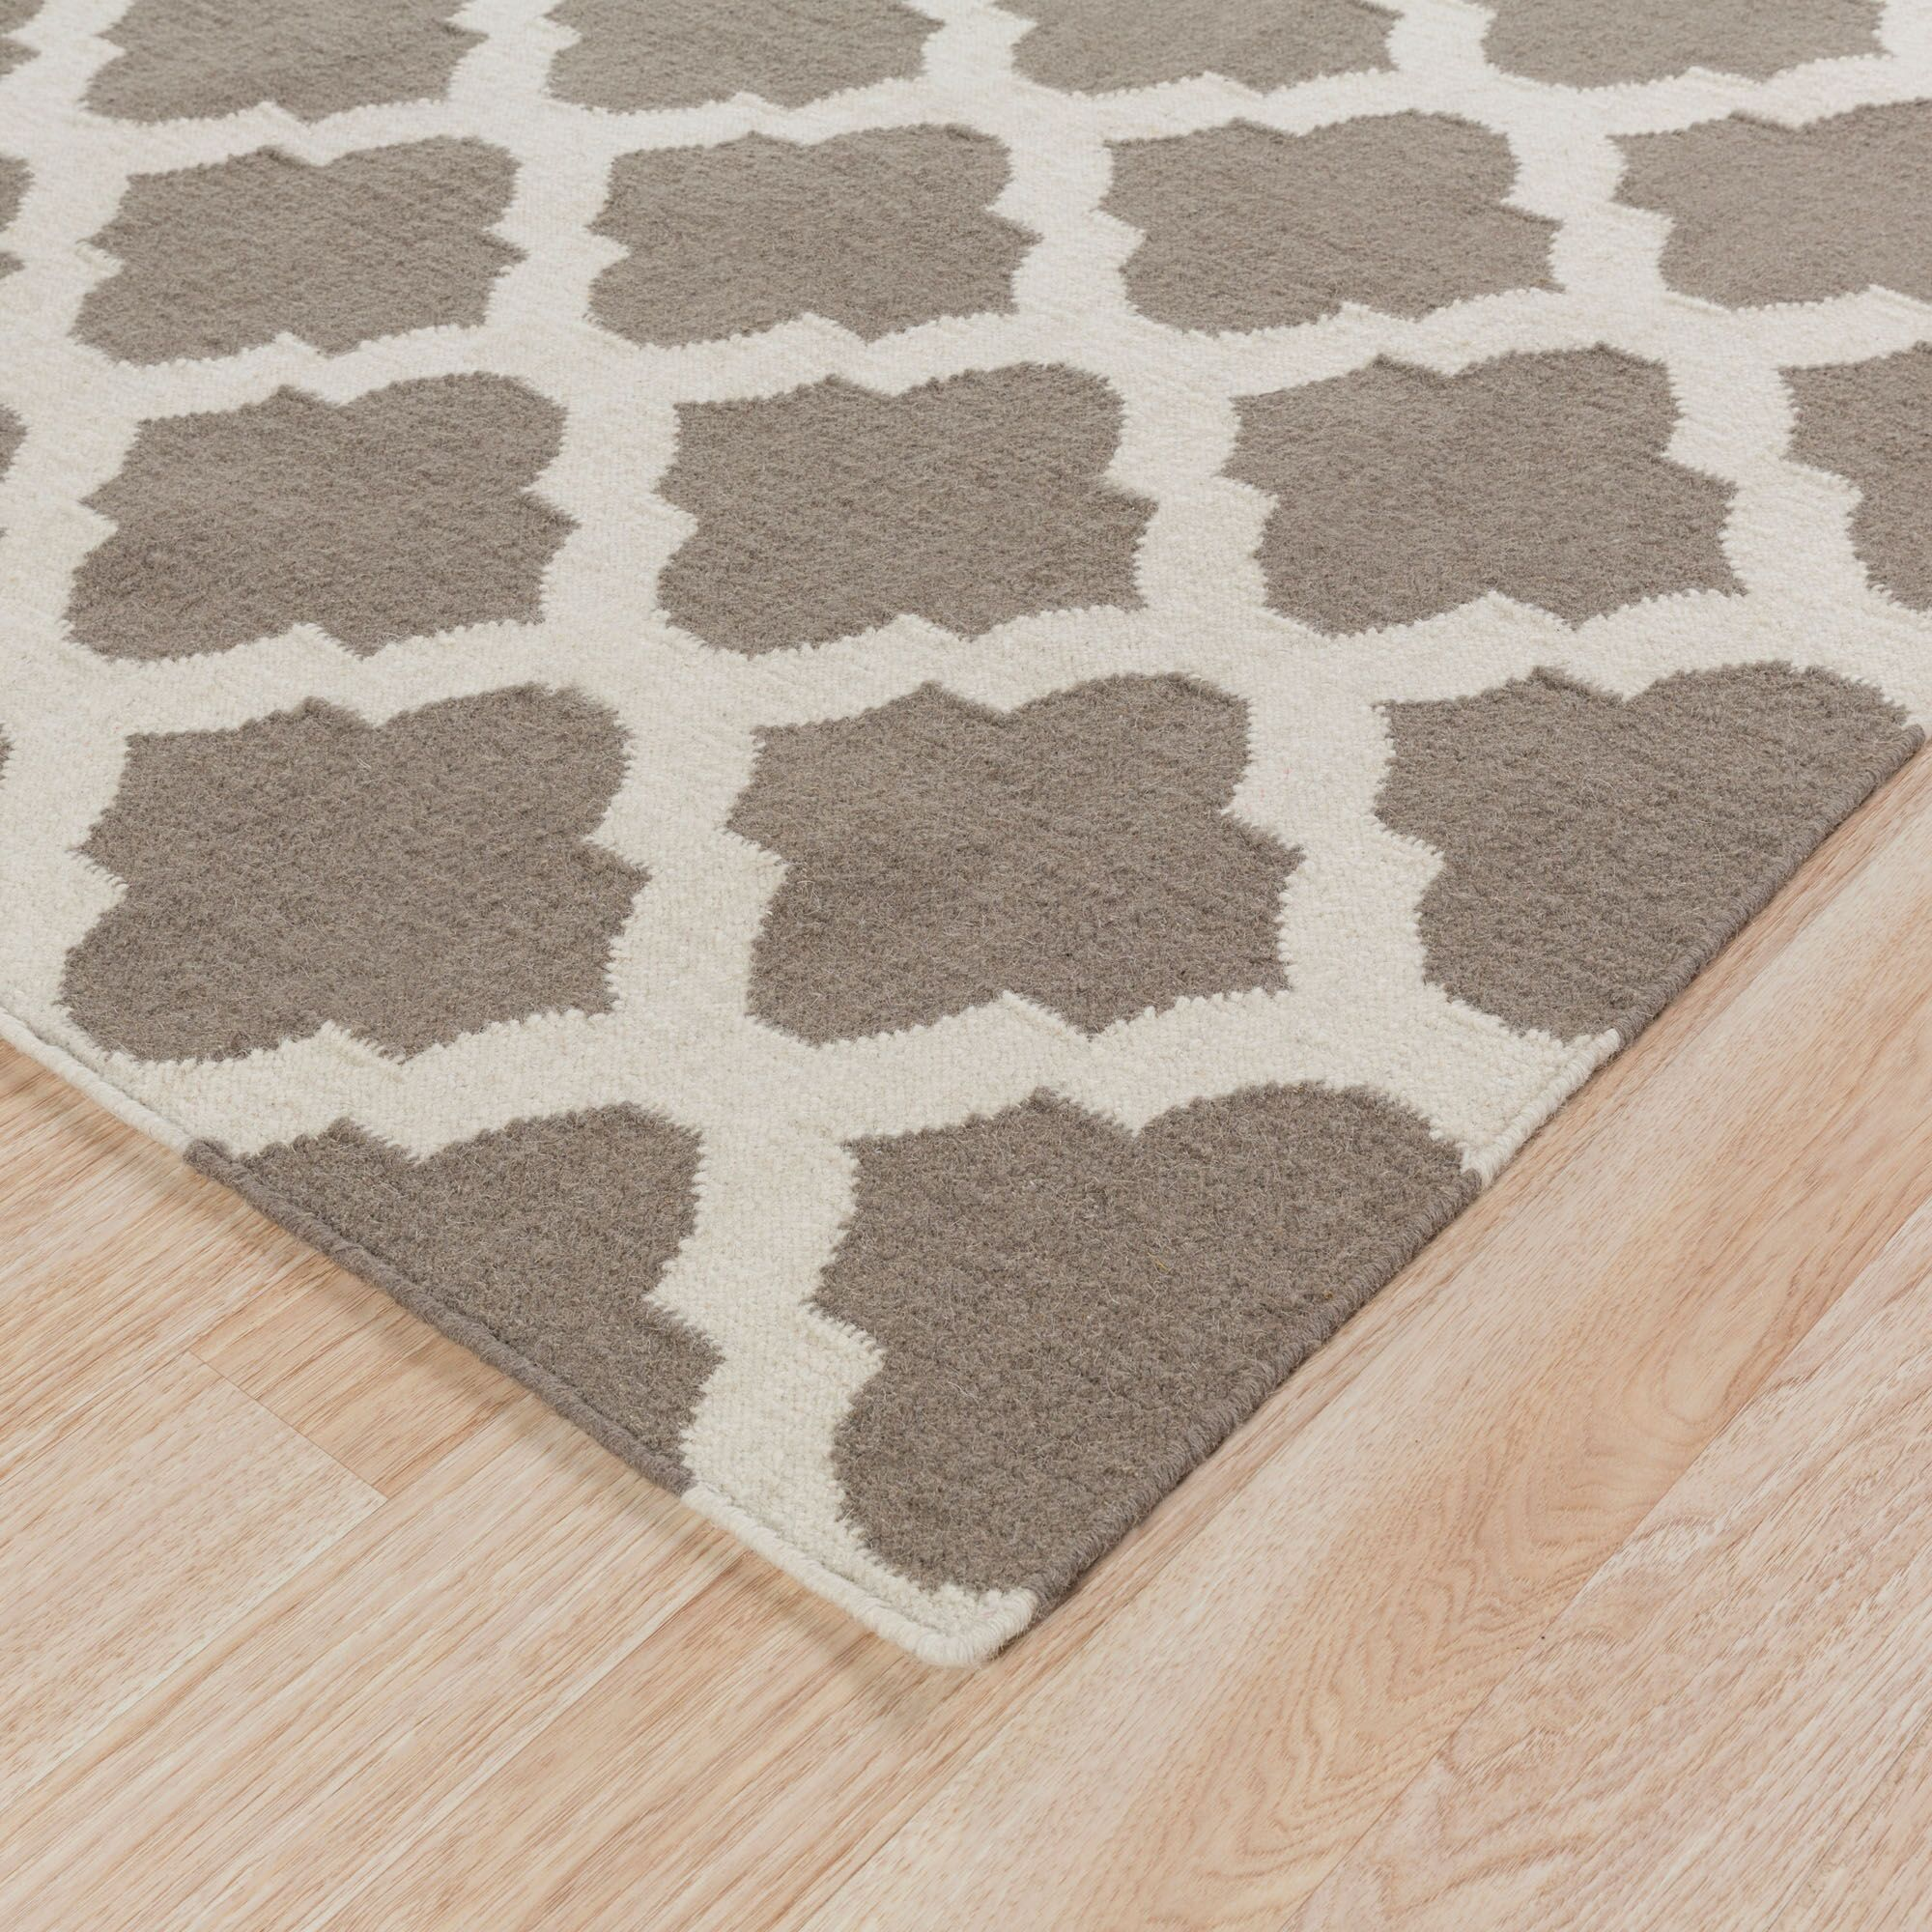 Odell Stone Rug Rug Size: Rectangle 5' x 8'